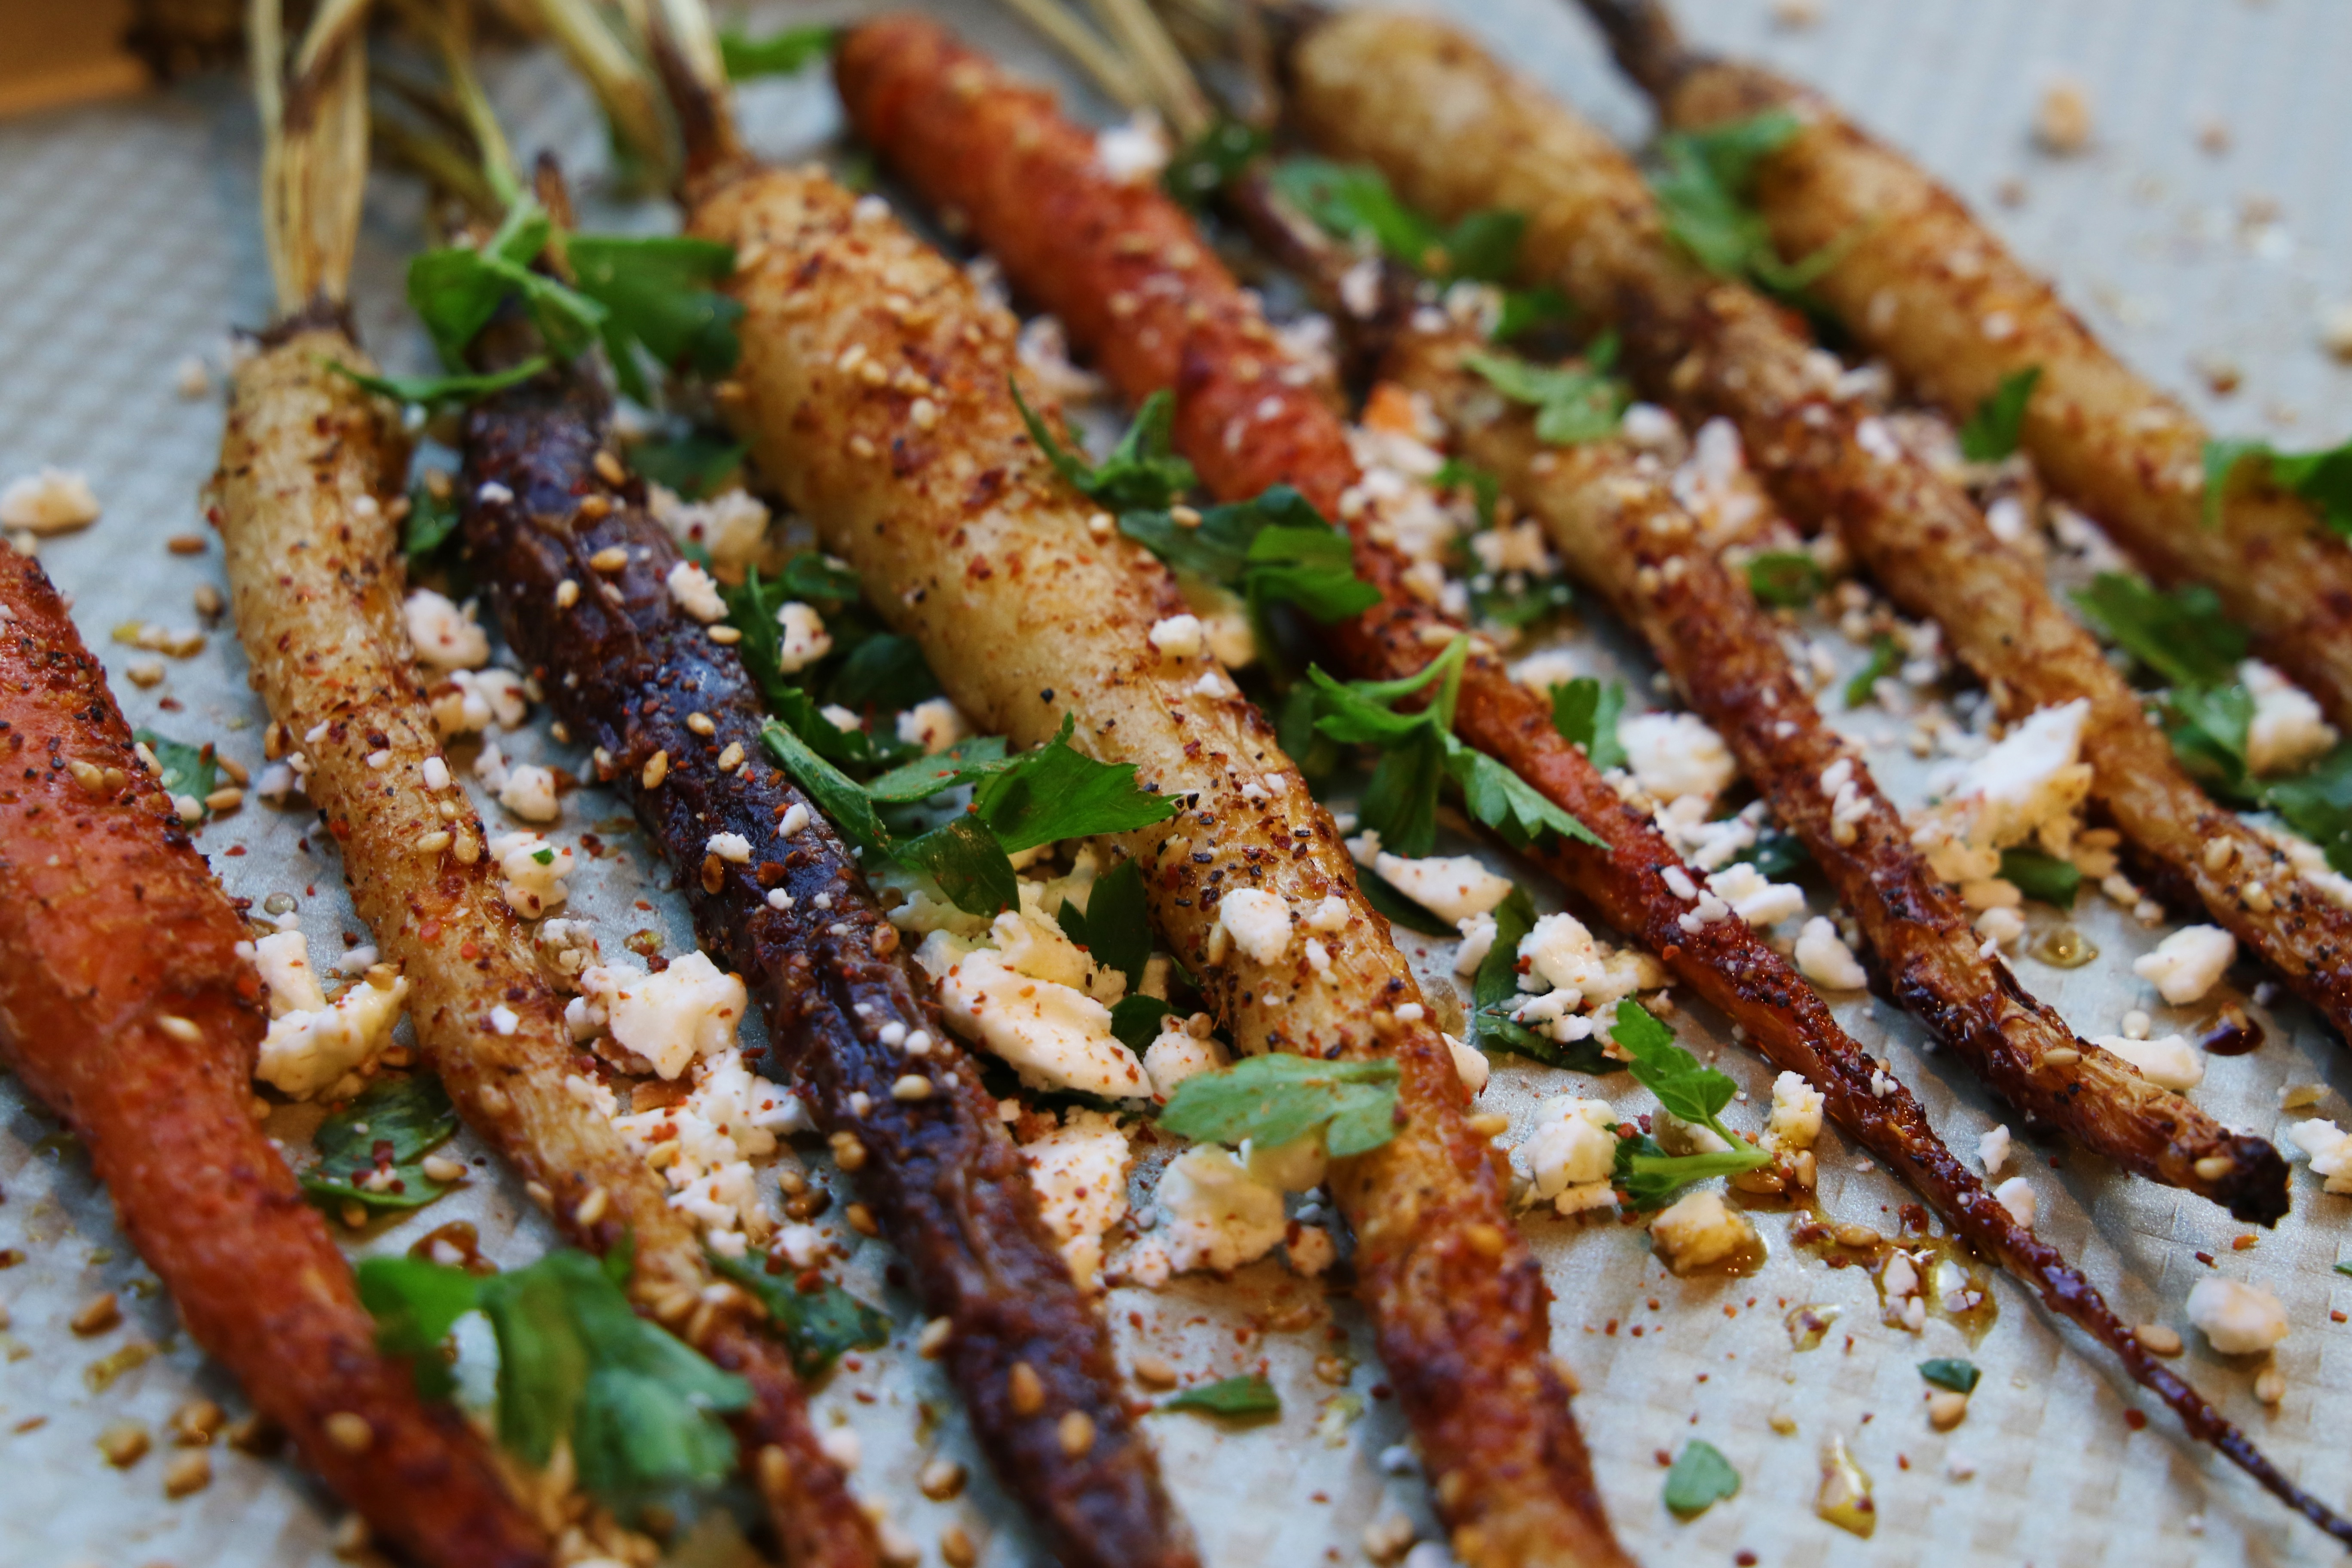 dinner side dish recipe of roasted rainbow carrots with spices and crumbled goat cheese